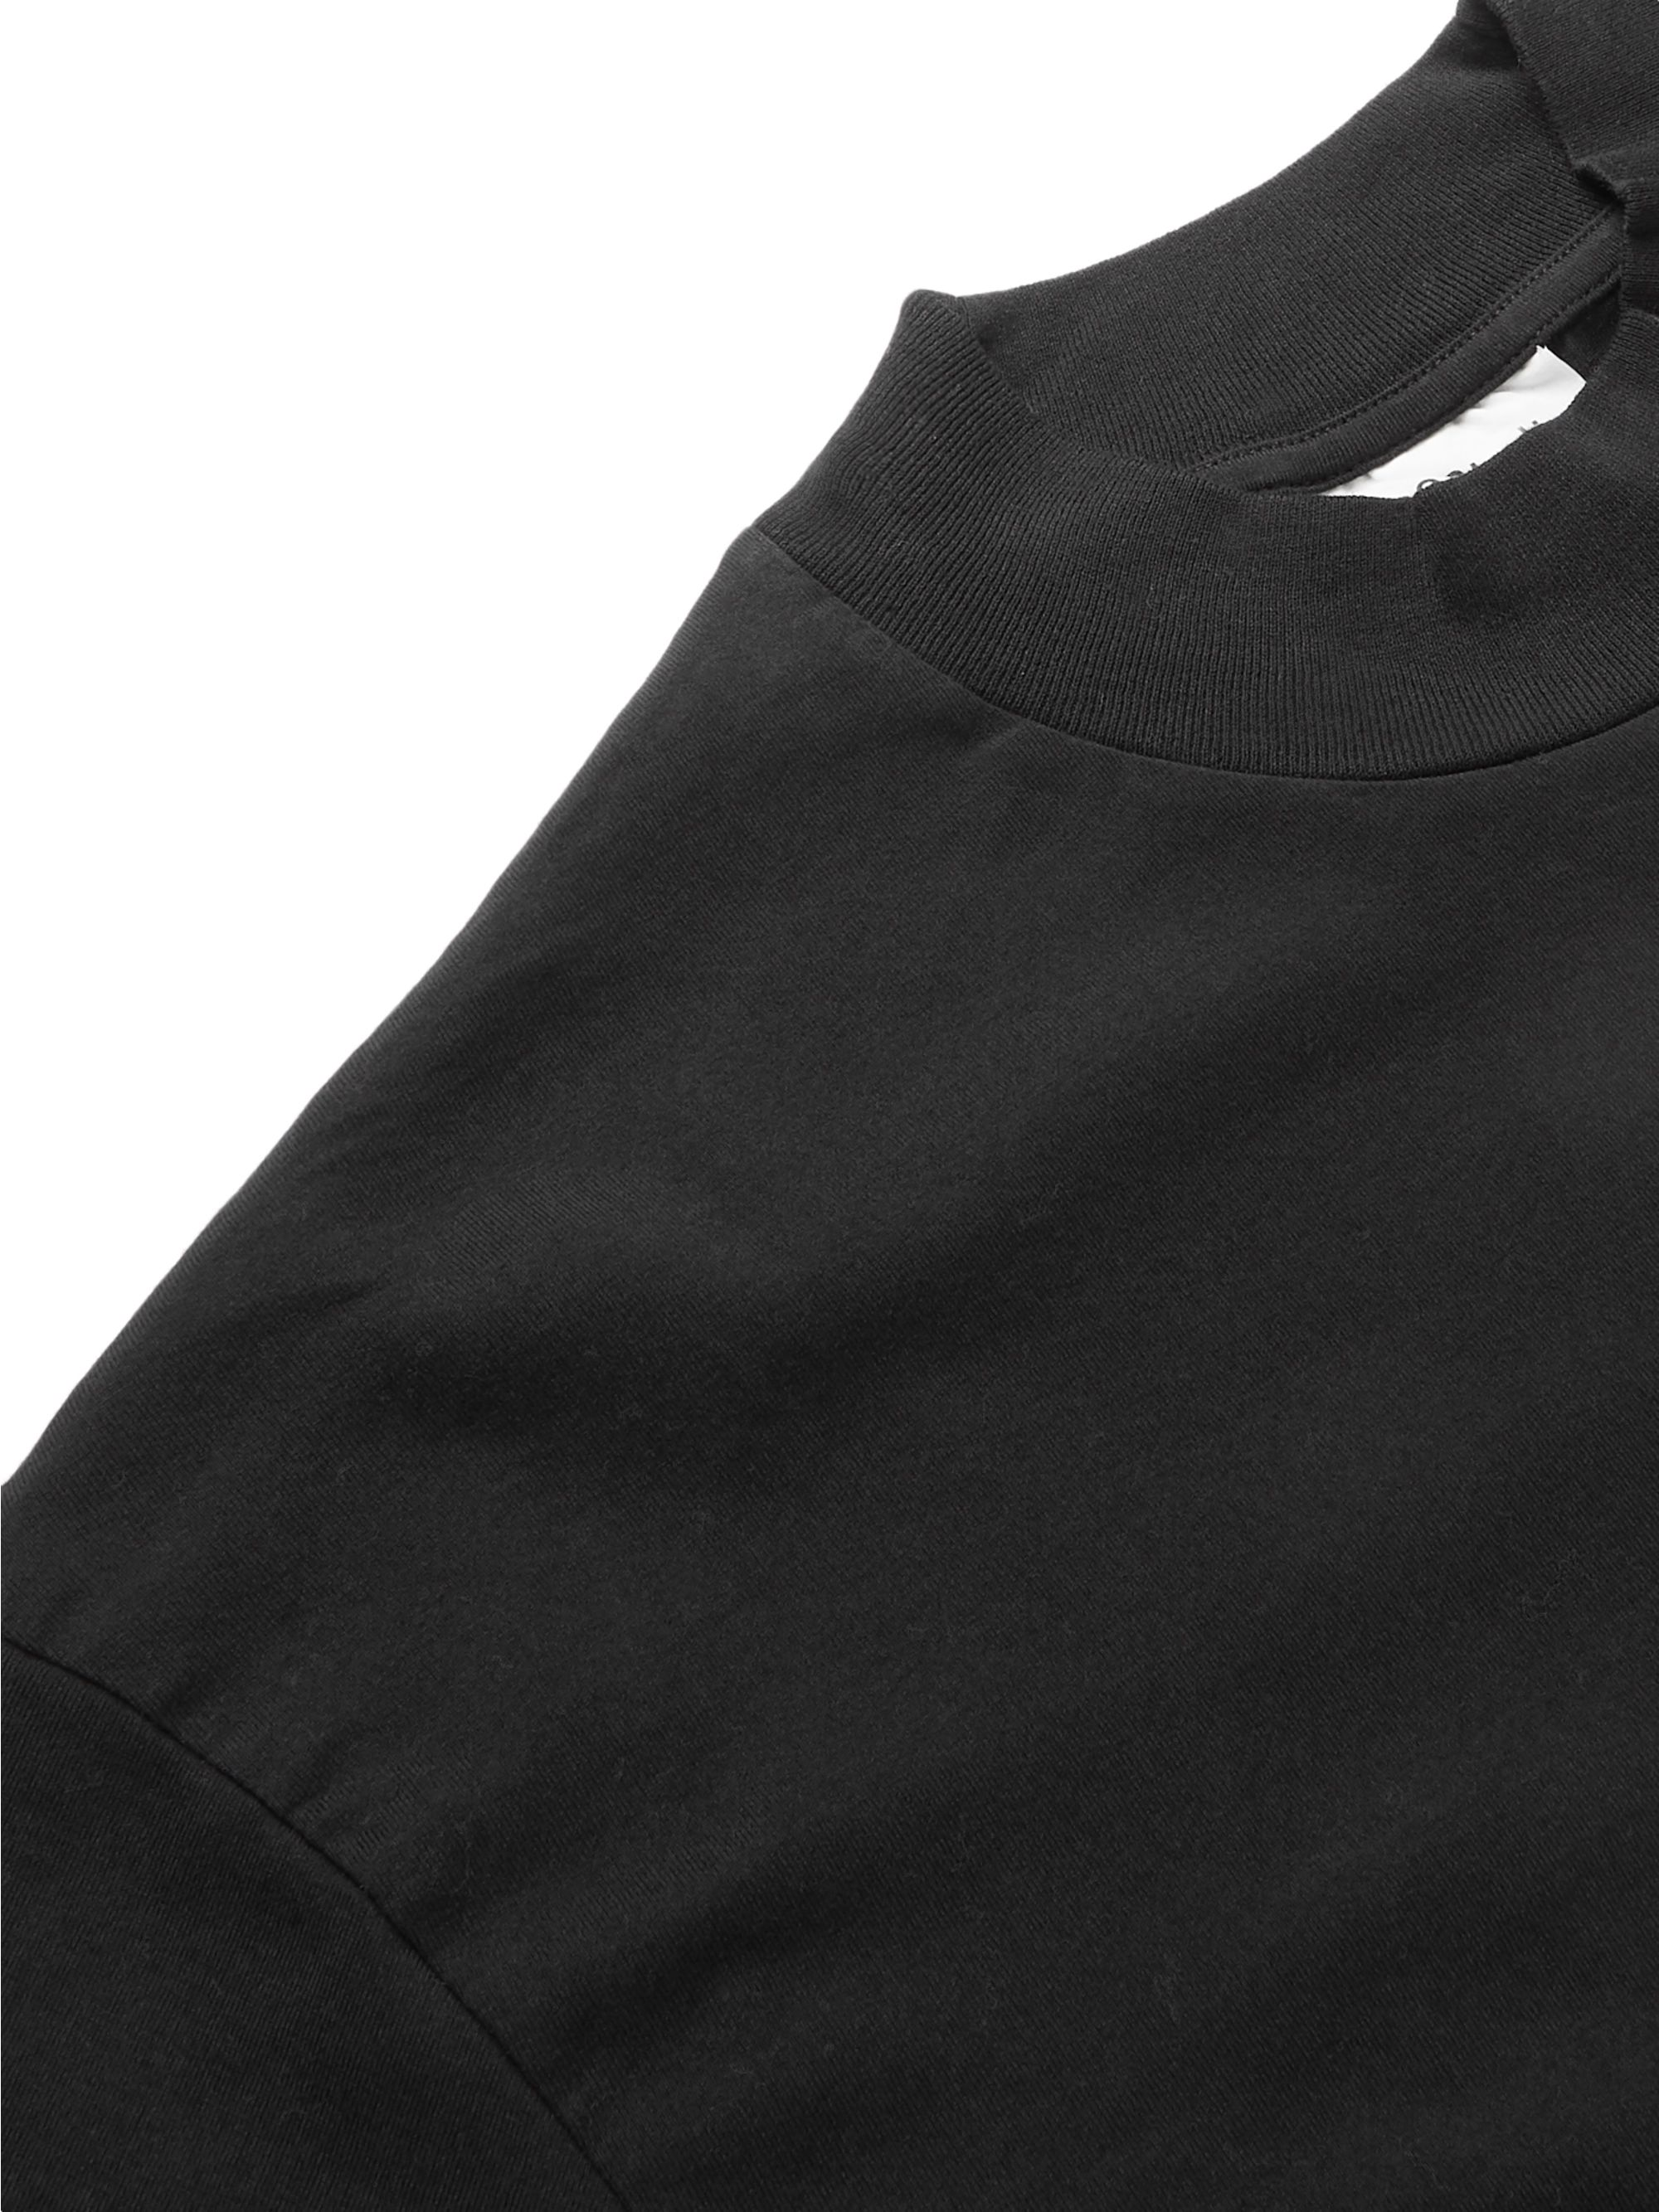 Acne Studios Cotton-Jersey Mock-Neck T-Shirt